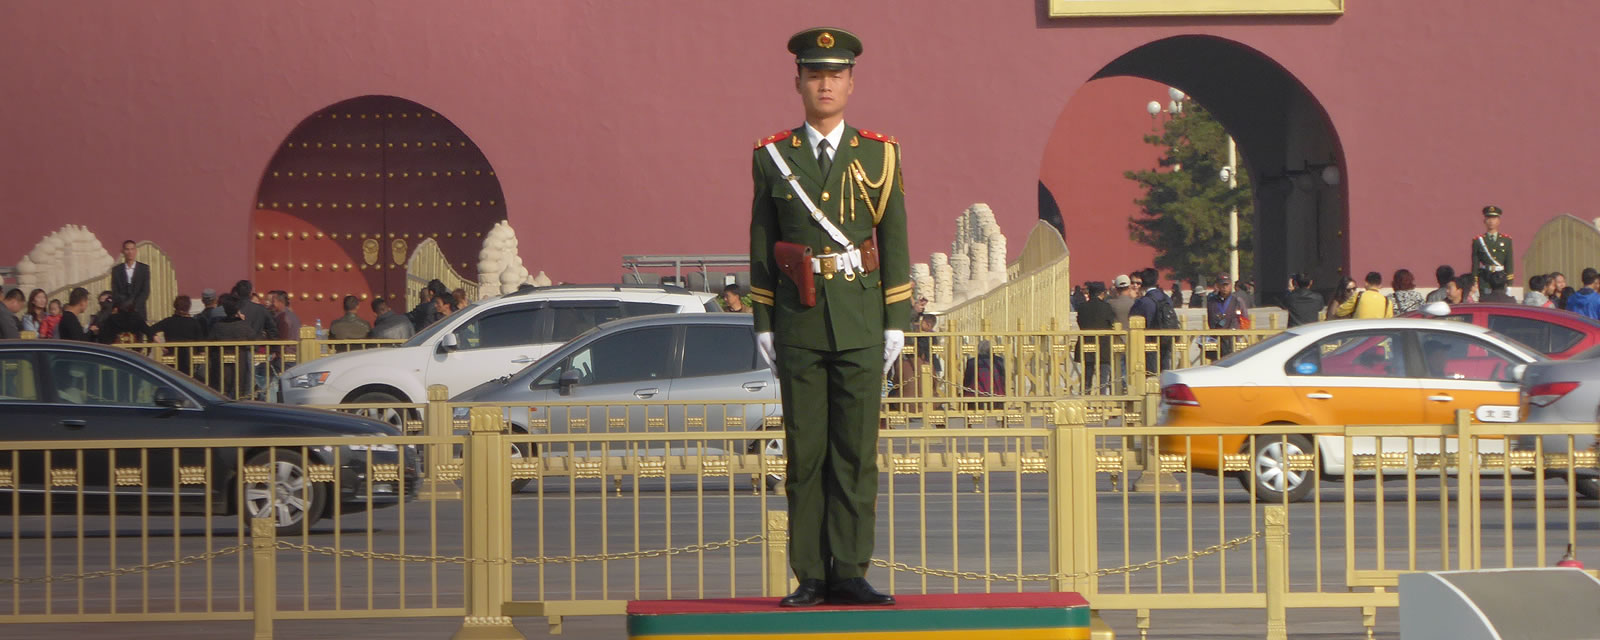 A soldier standing guard in Tiananmen Square, Beijing